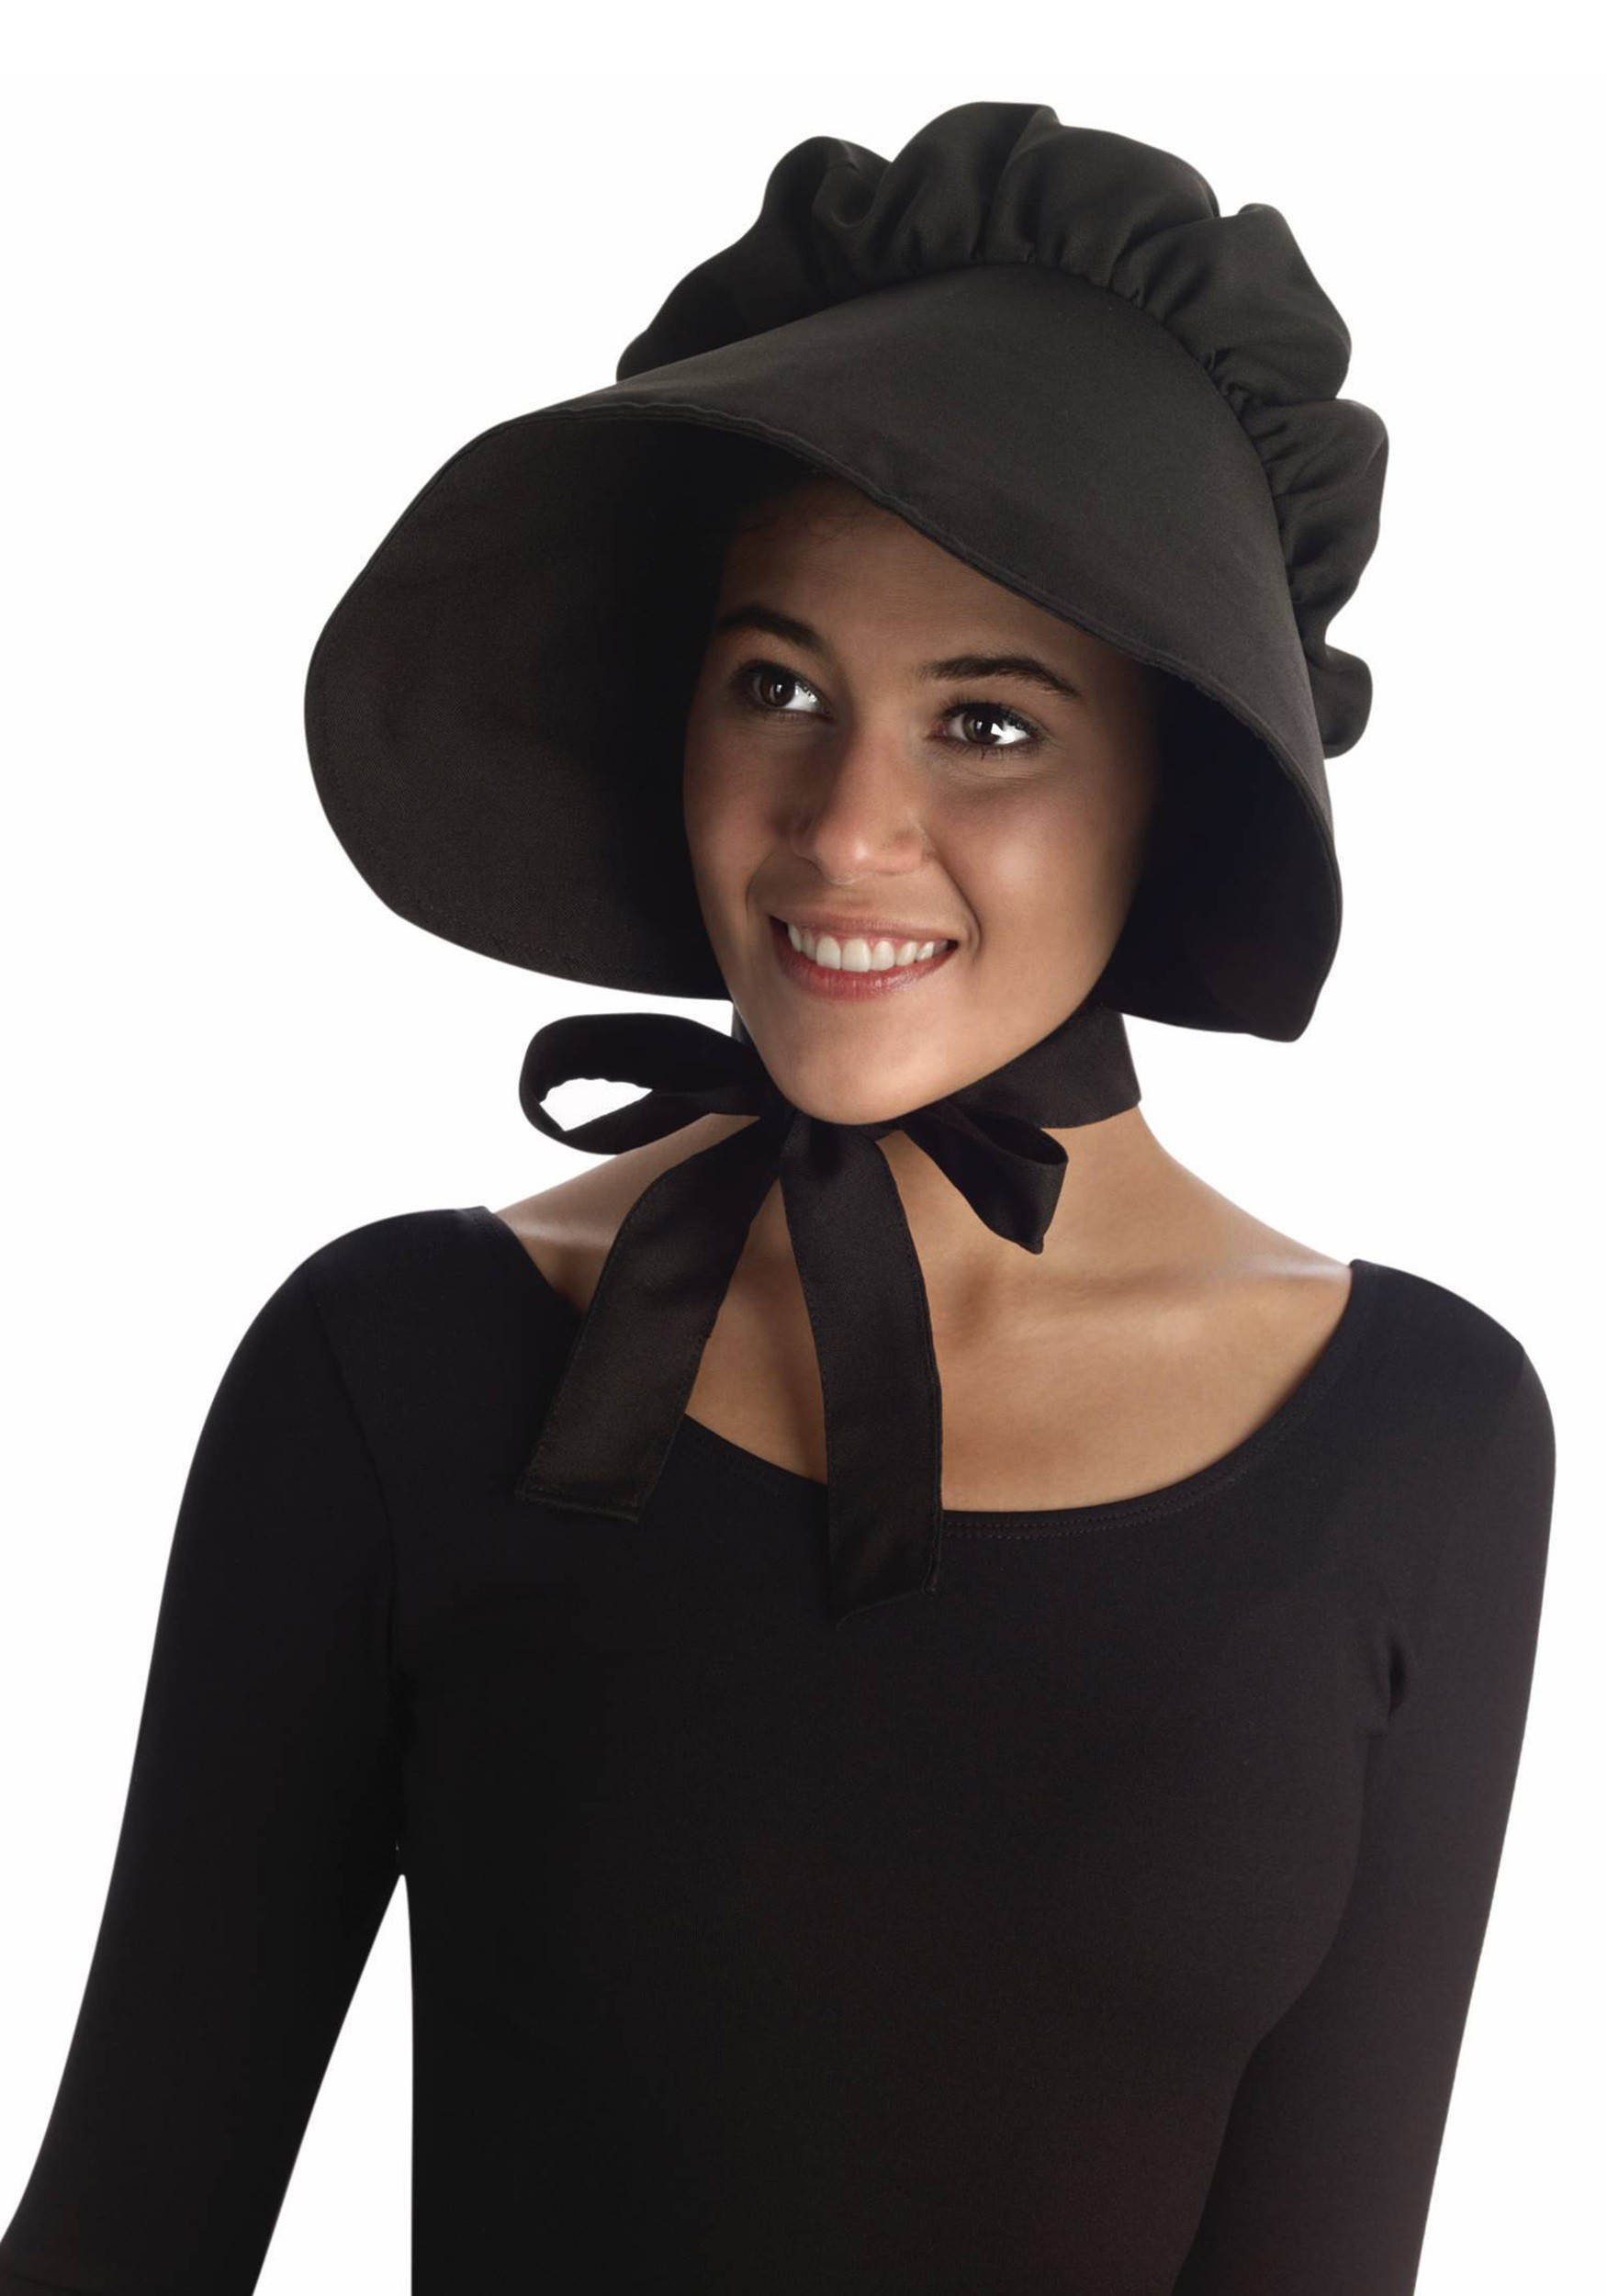 e2c2a9134 Women's Black Pioneer Bonnet